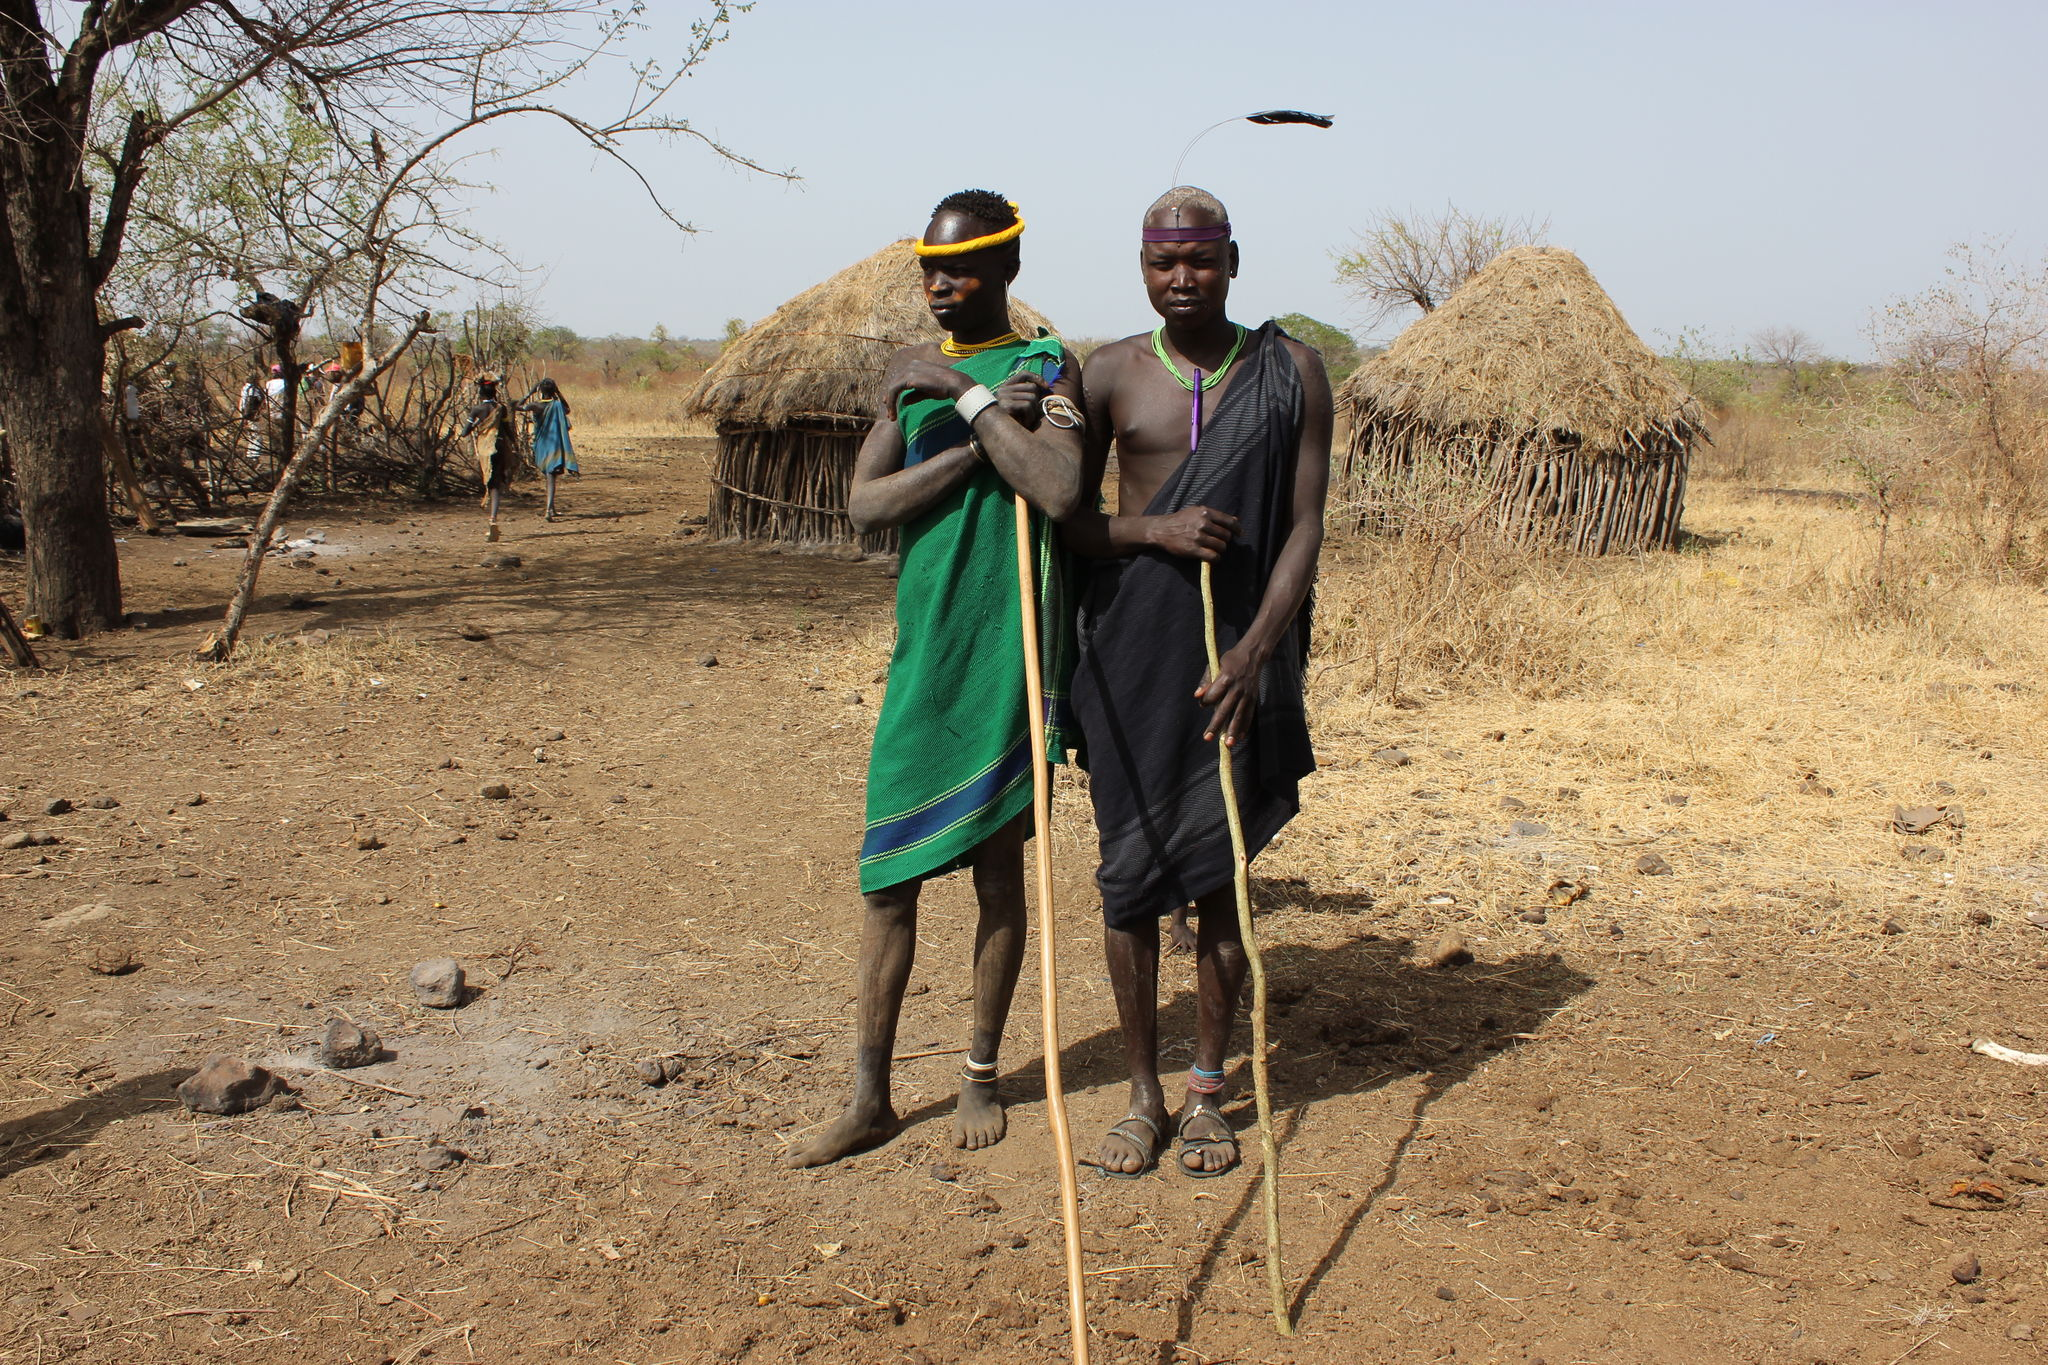 habitants du village mursi